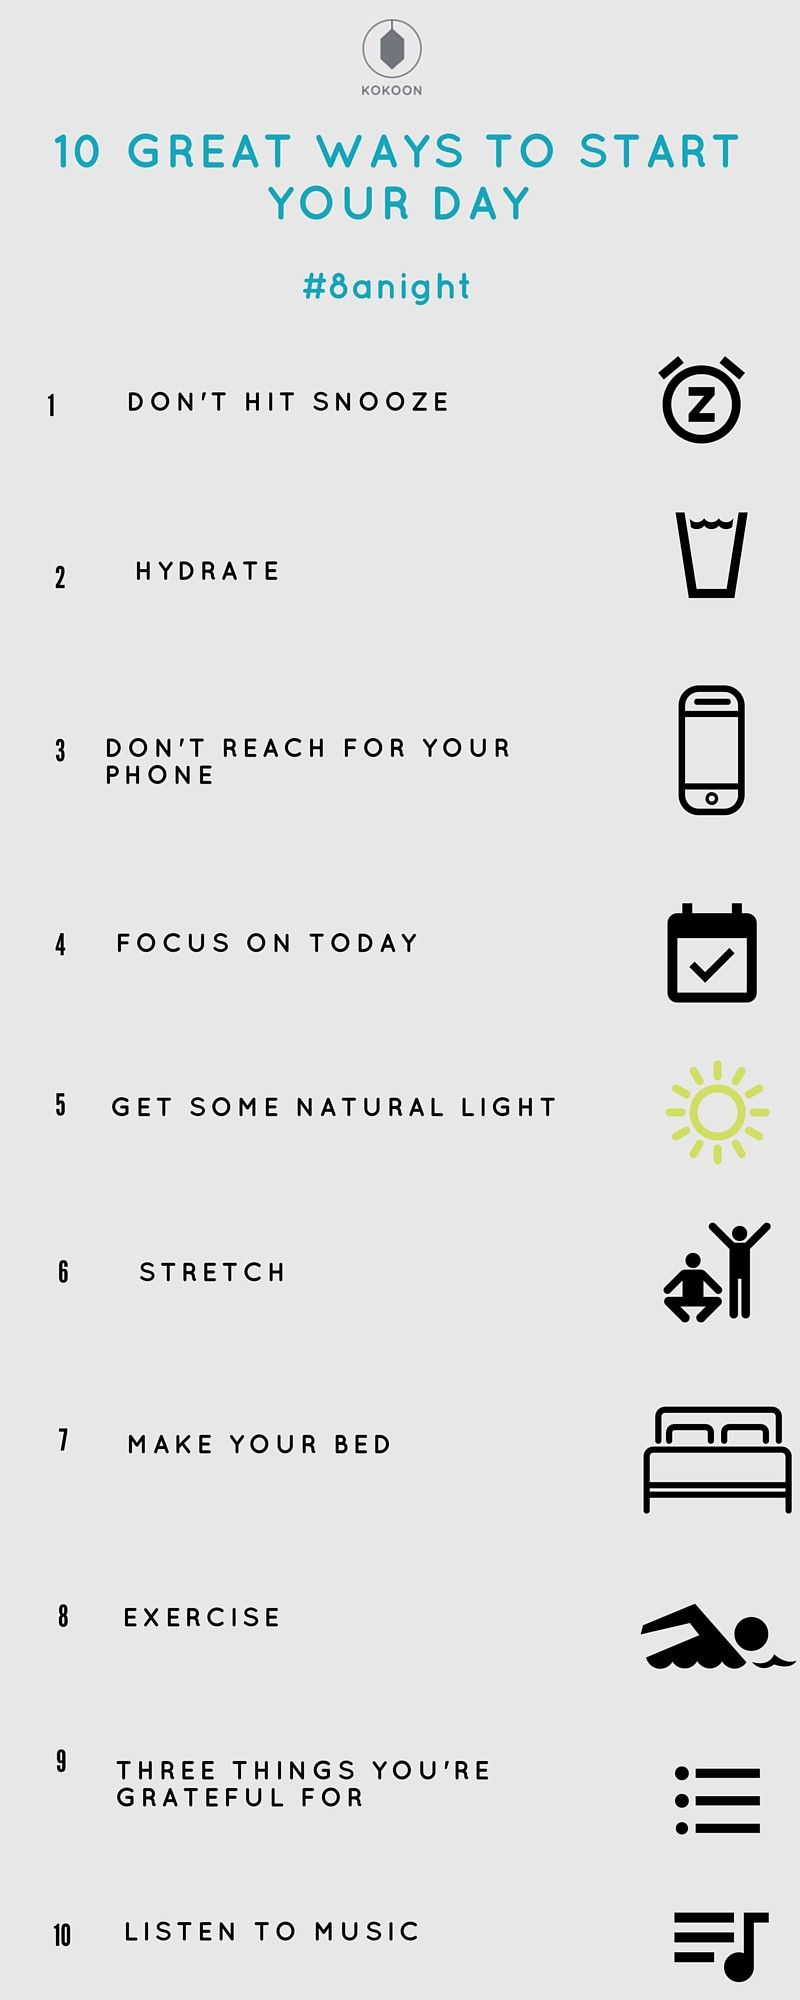 10 great ways to start your day